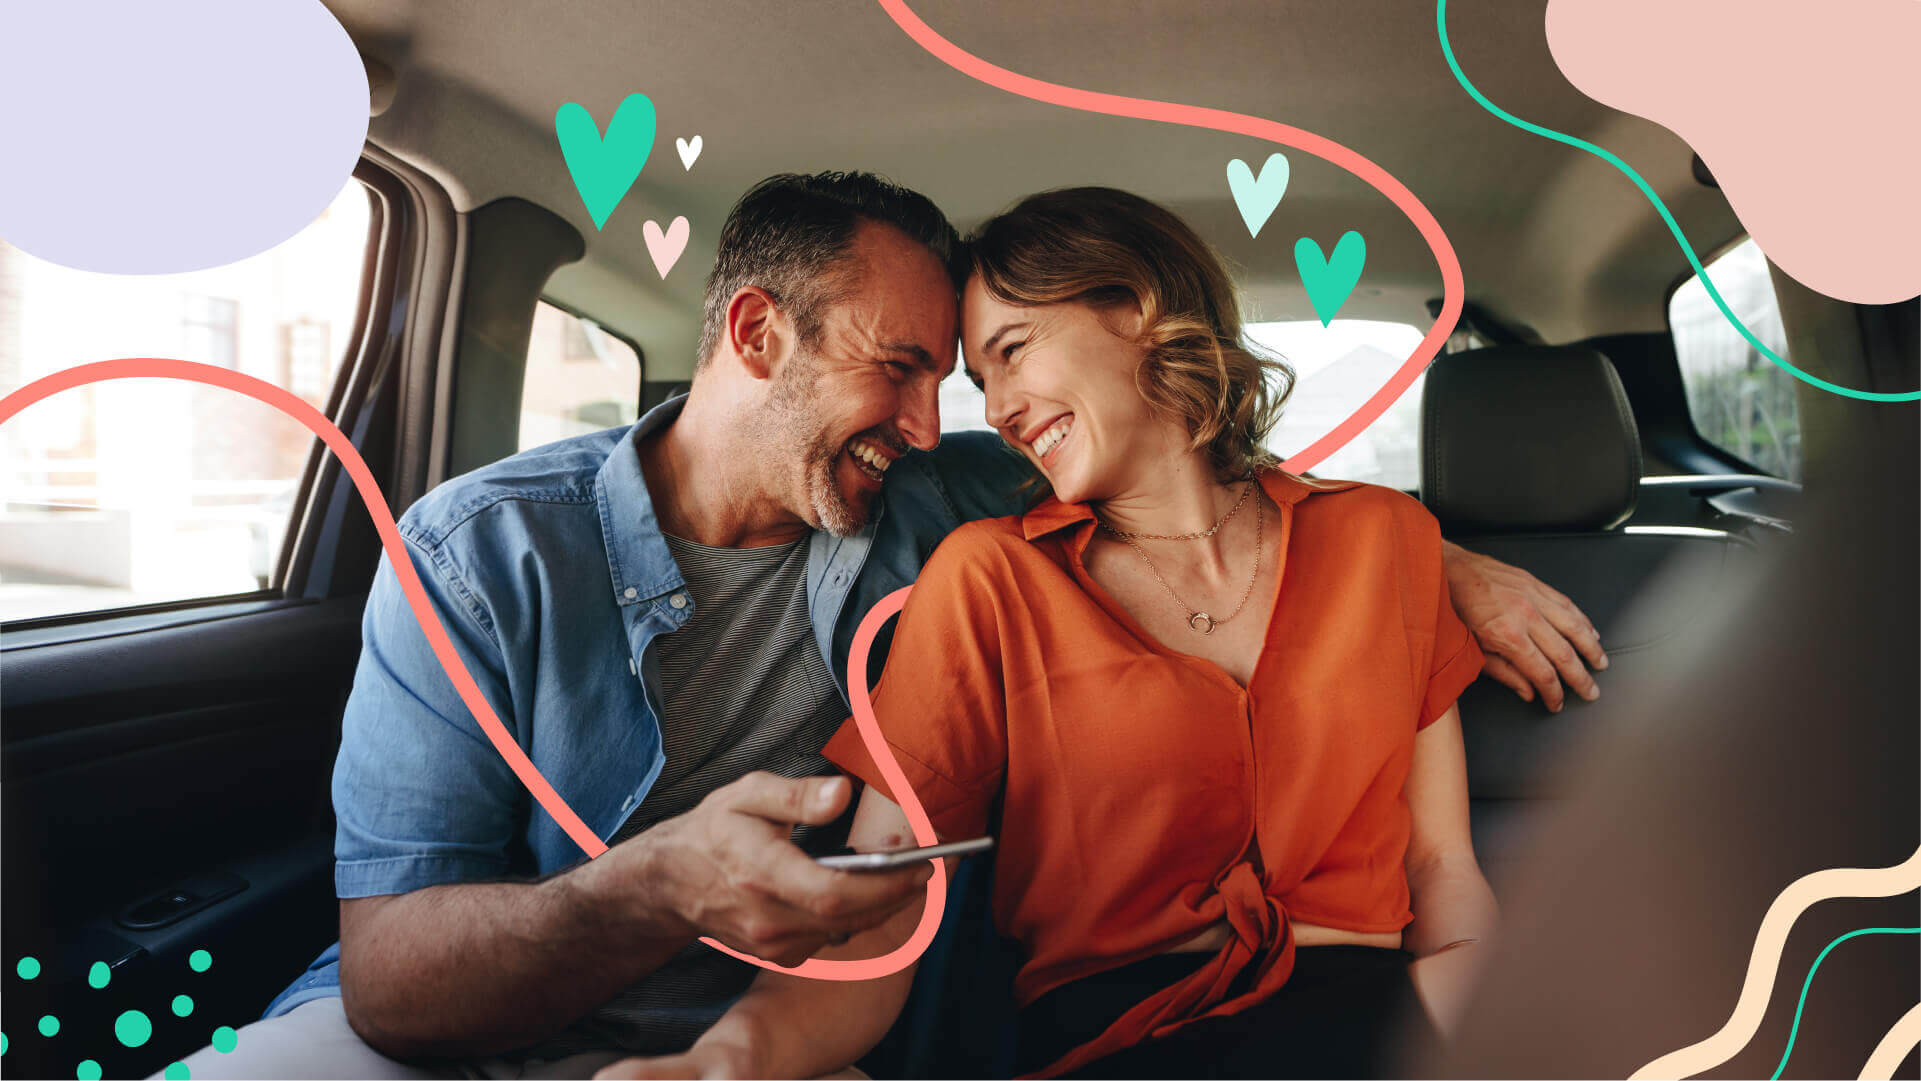 Passengers find love in a Beat ride